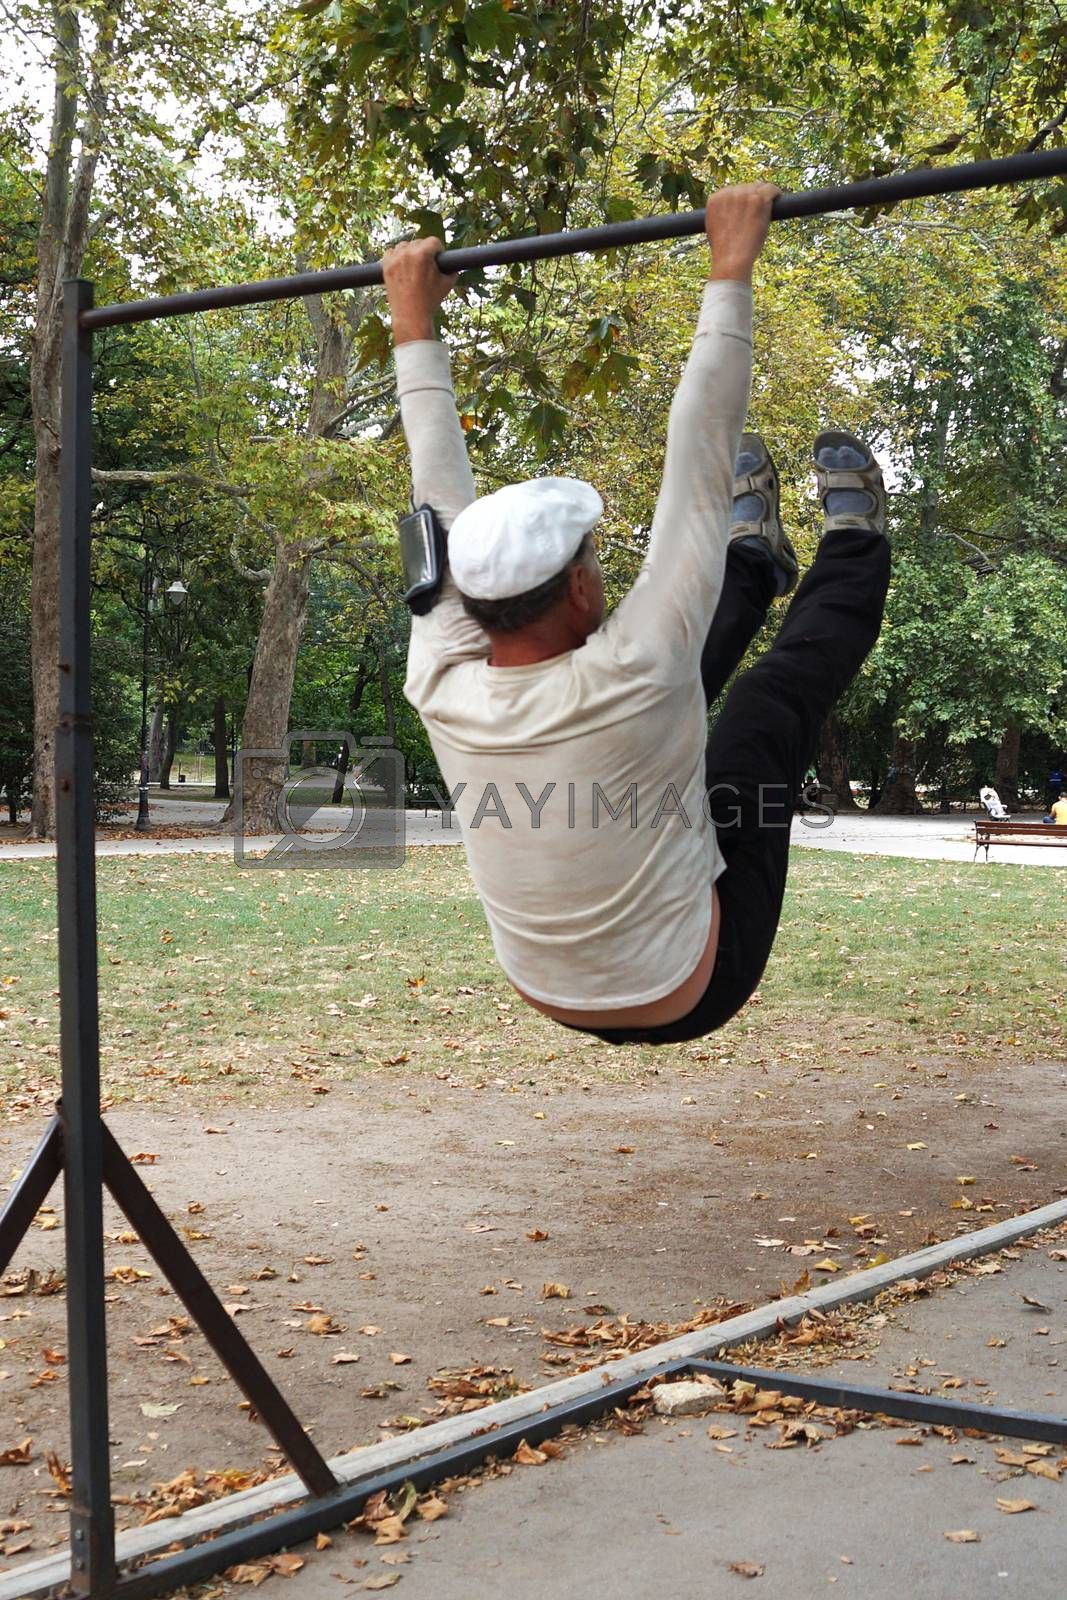 man is engaged on a horizontal bar in the park.